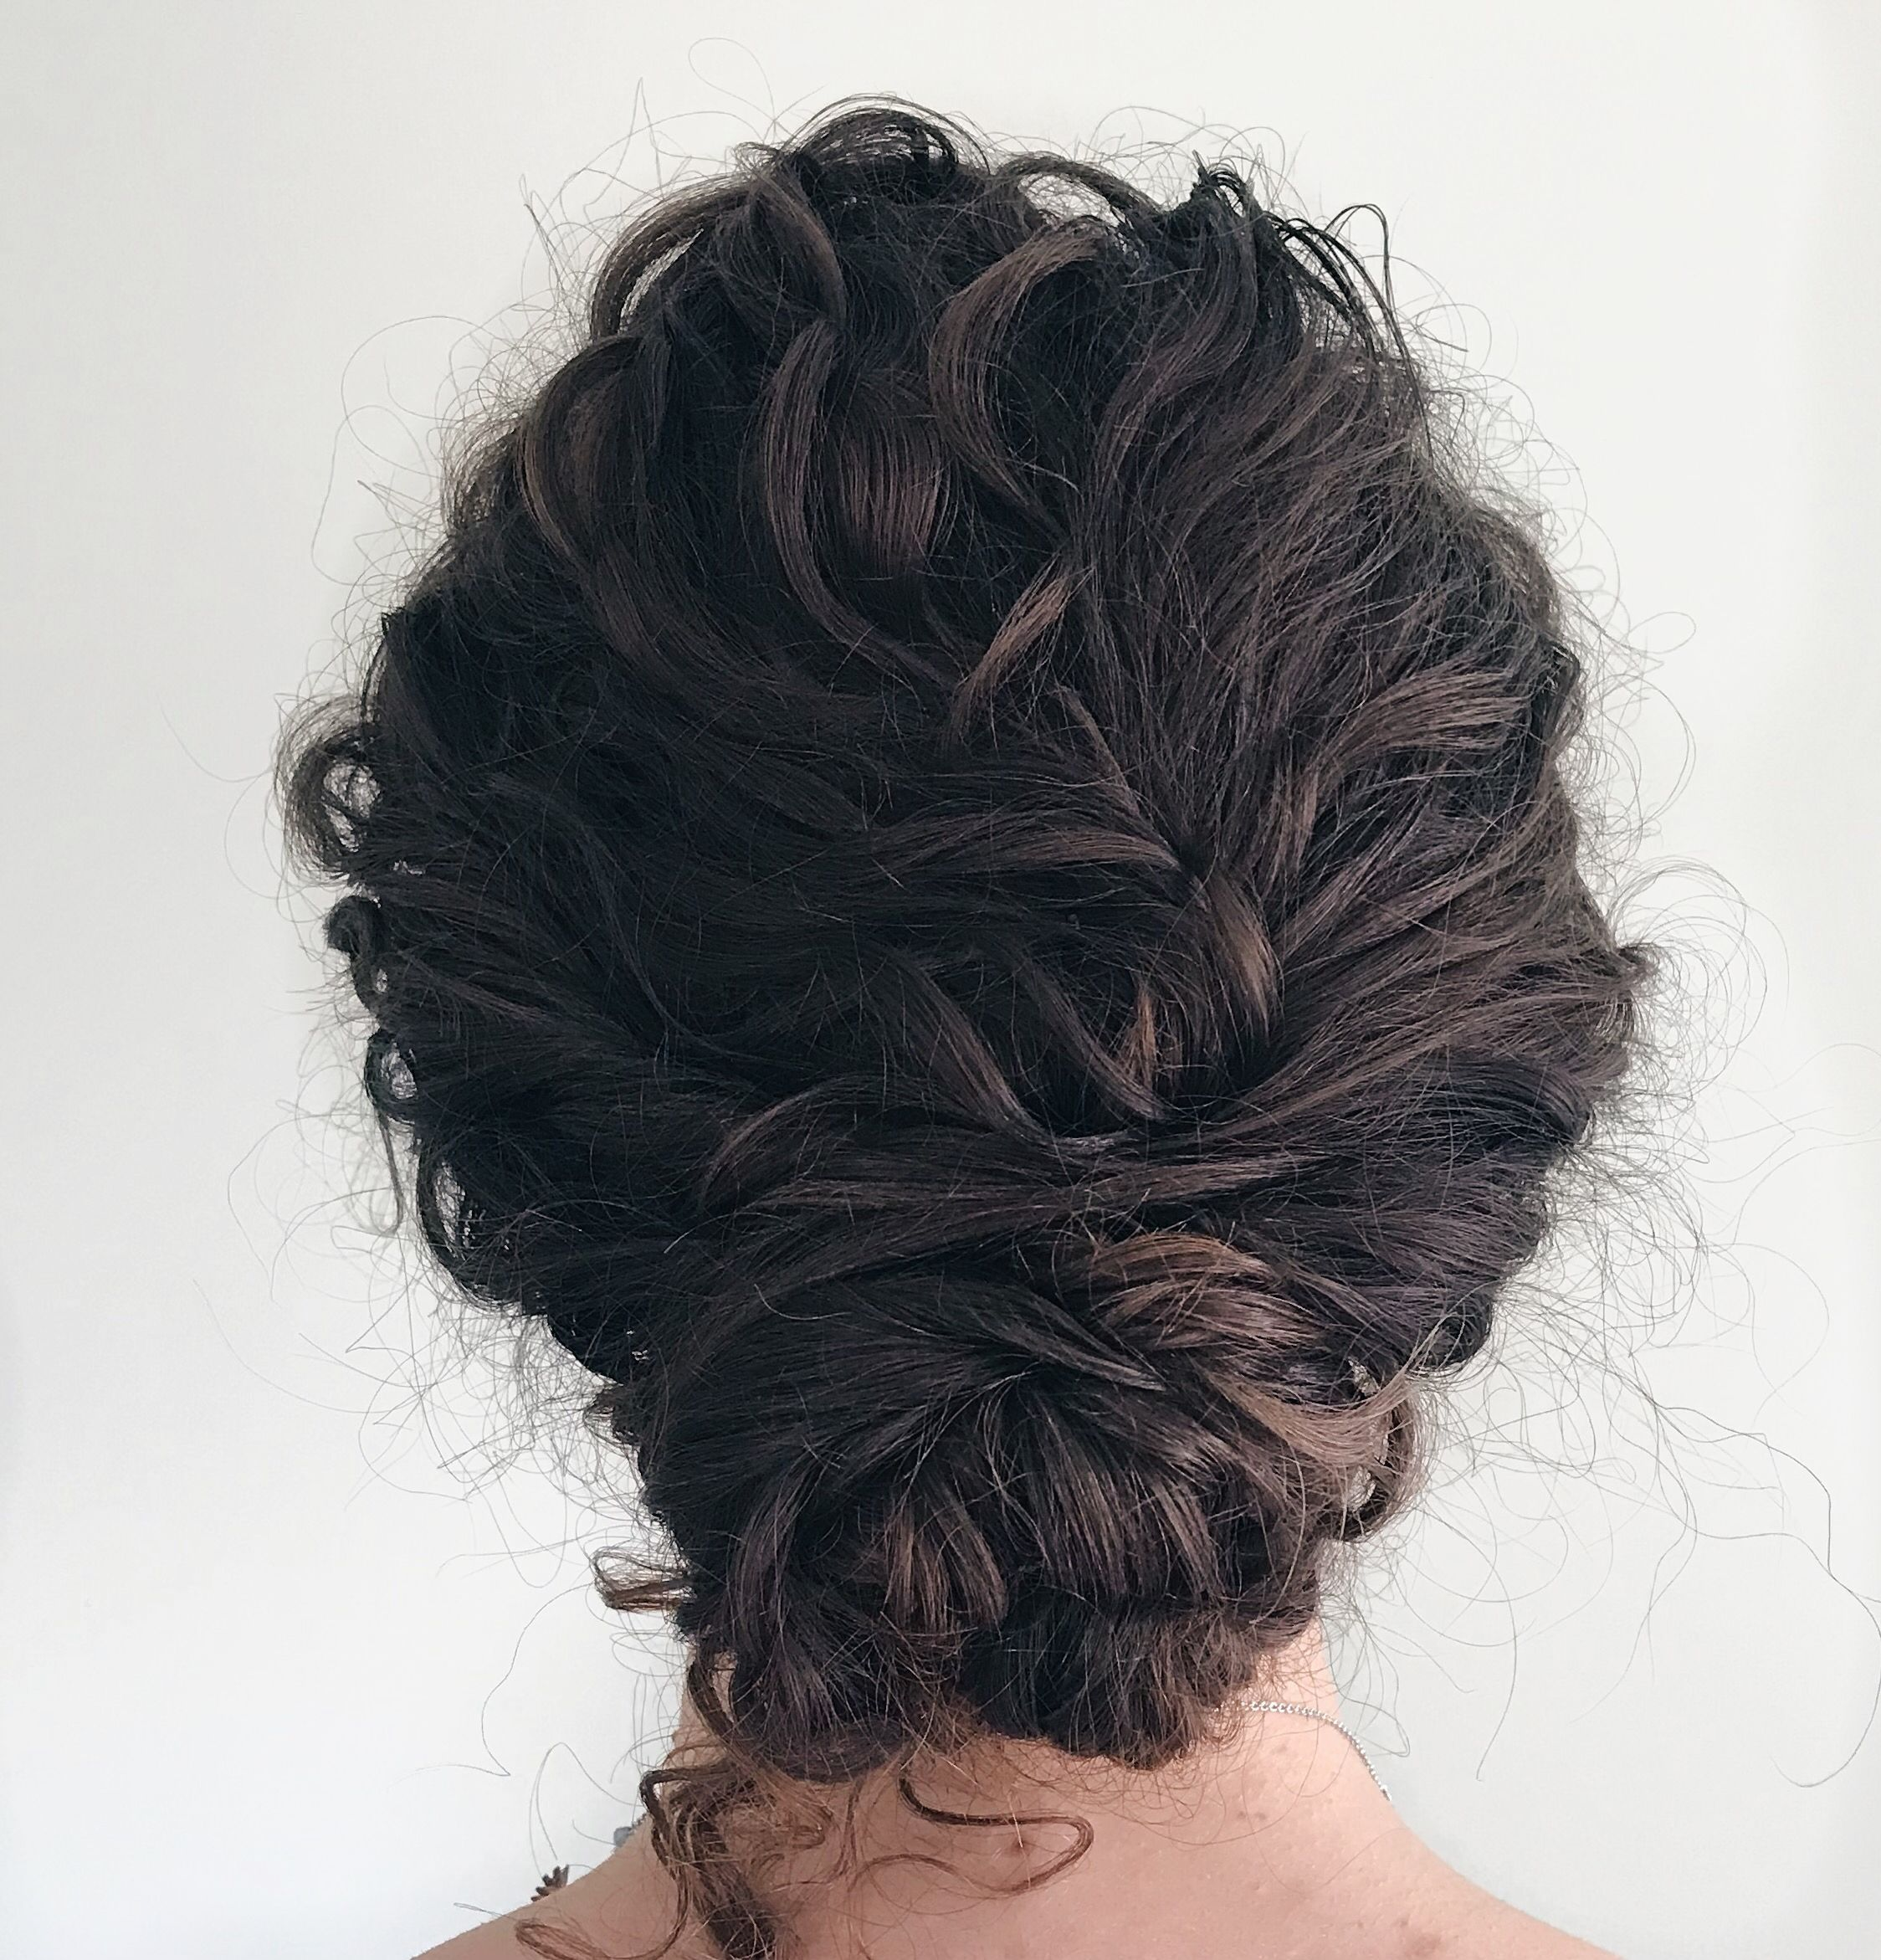 Naturally Curly Low Bun Curly Hair Up Curly Hair Styles Naturally Curly Bridal Hair